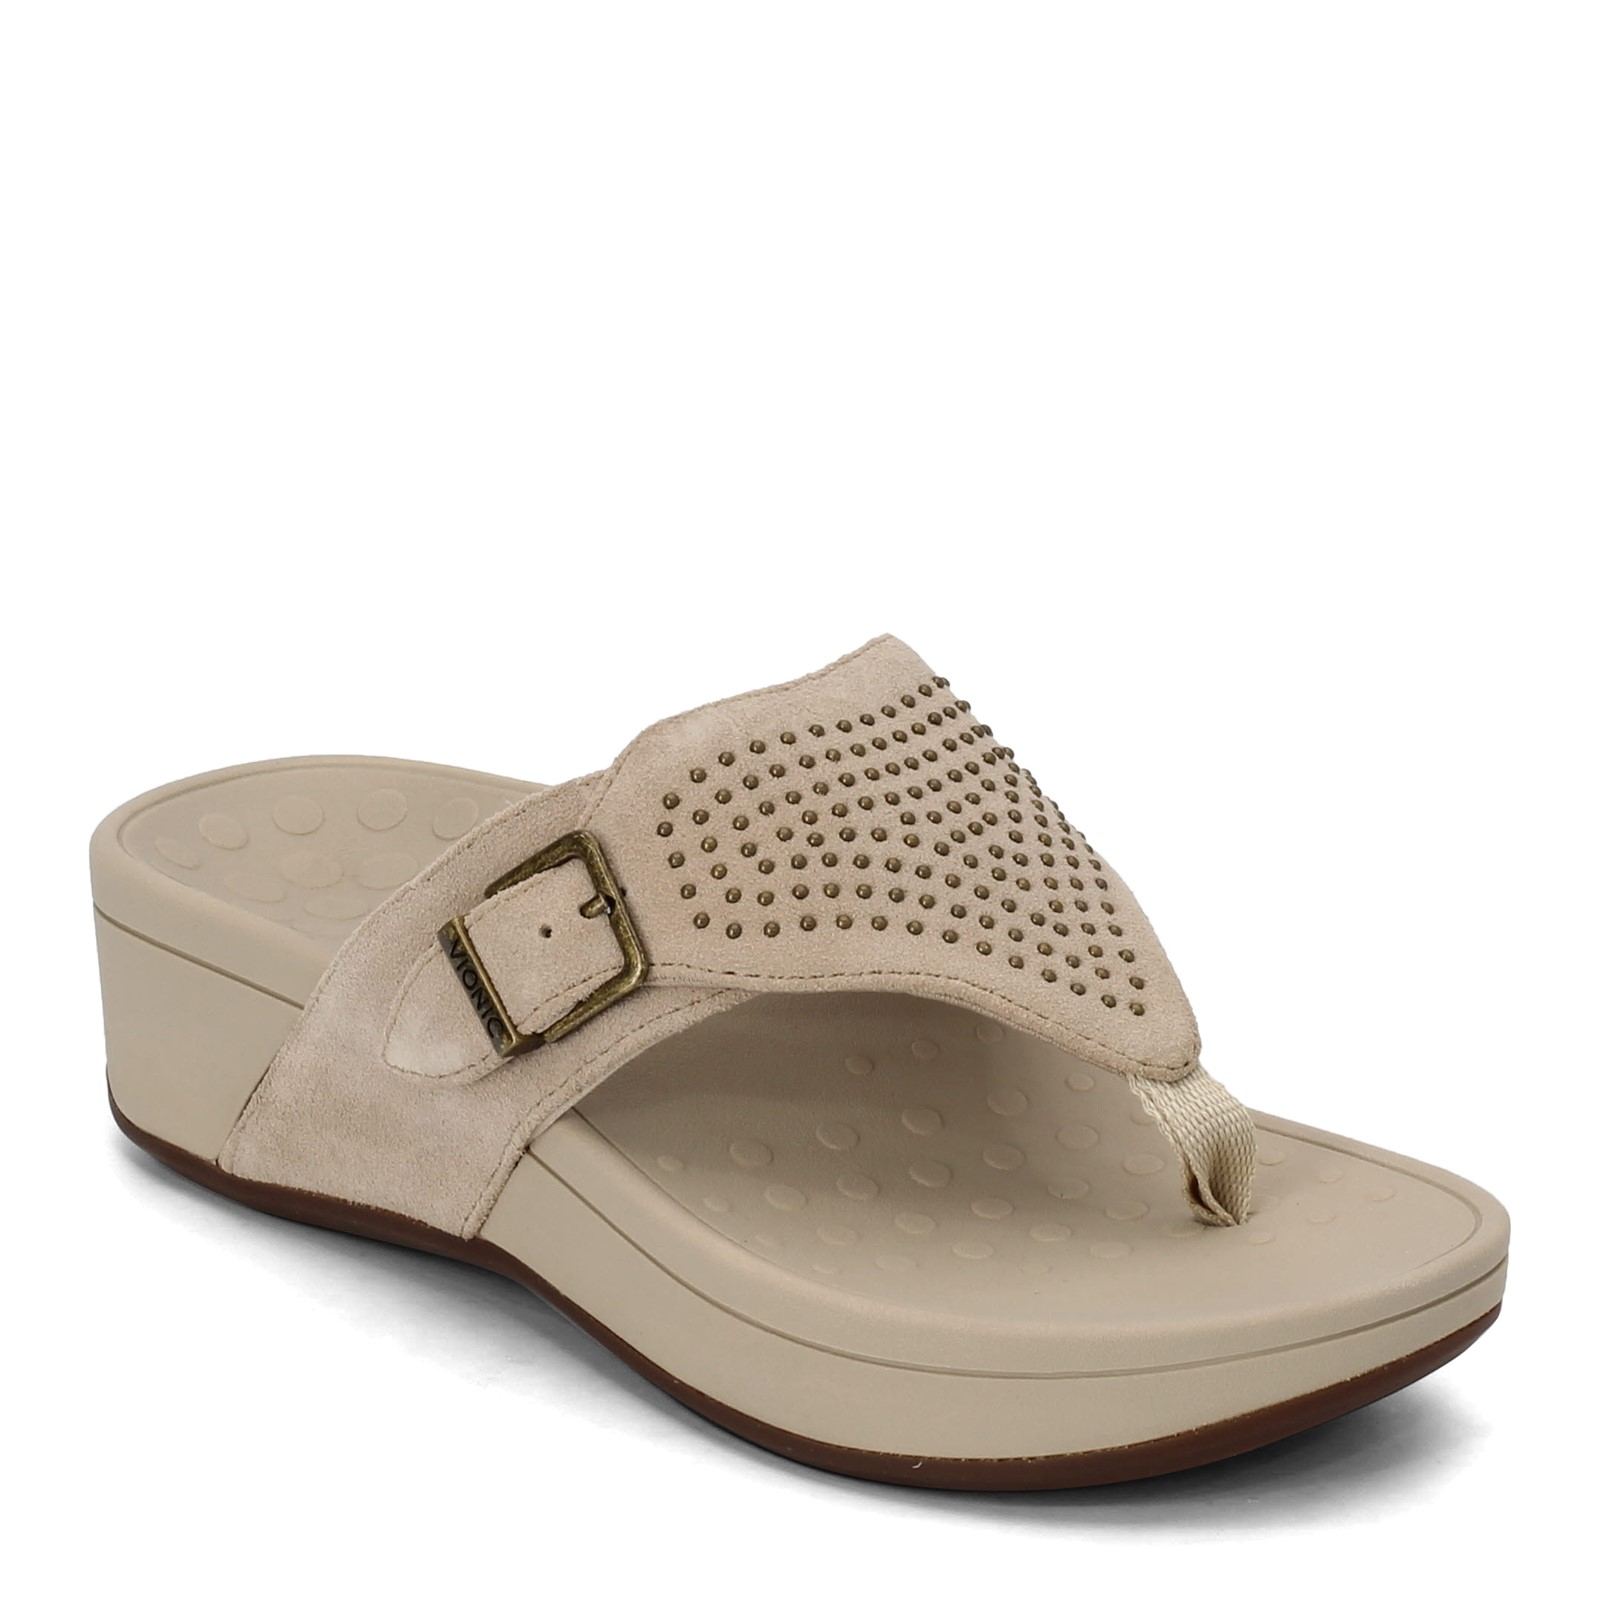 0ad8408bfb Women's Vionic, Pacific Capitola Thong Style Sandals | Peltz Shoes